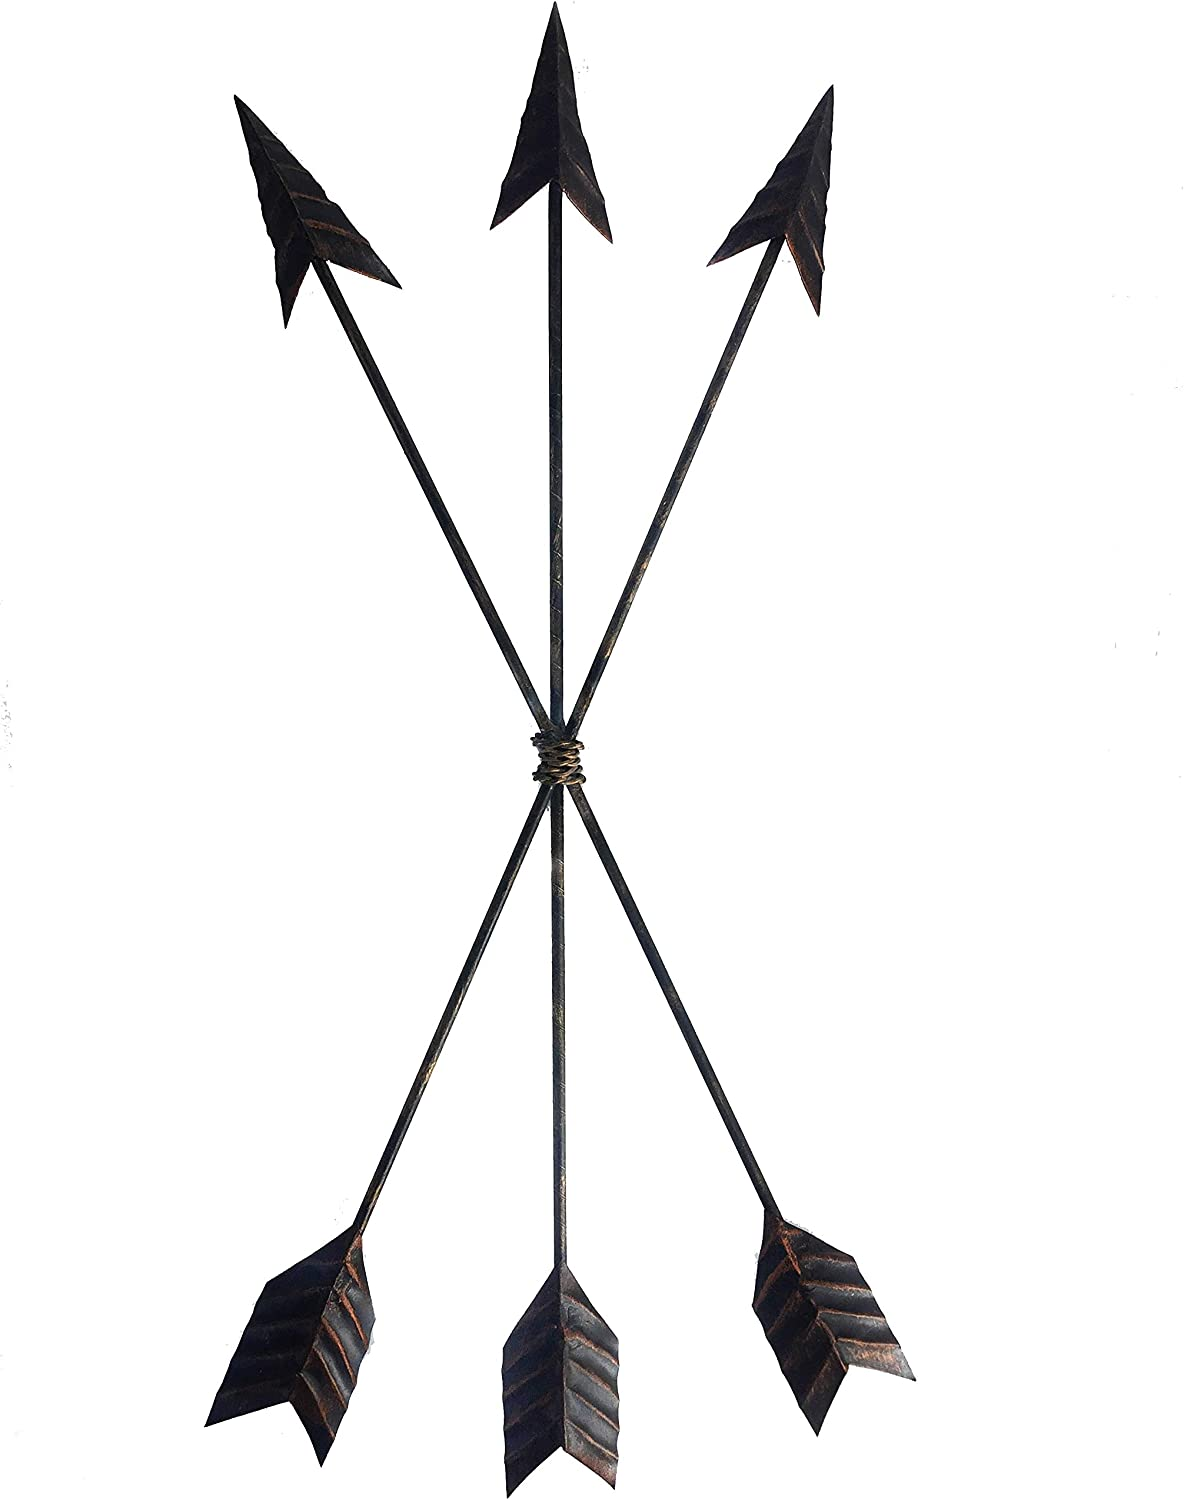 Crafia Cast Iron Metal Native American Arrow Wall Decor and Wall Sculptures | Metal Wall Art and Home Decor | Arrow Wall Decor